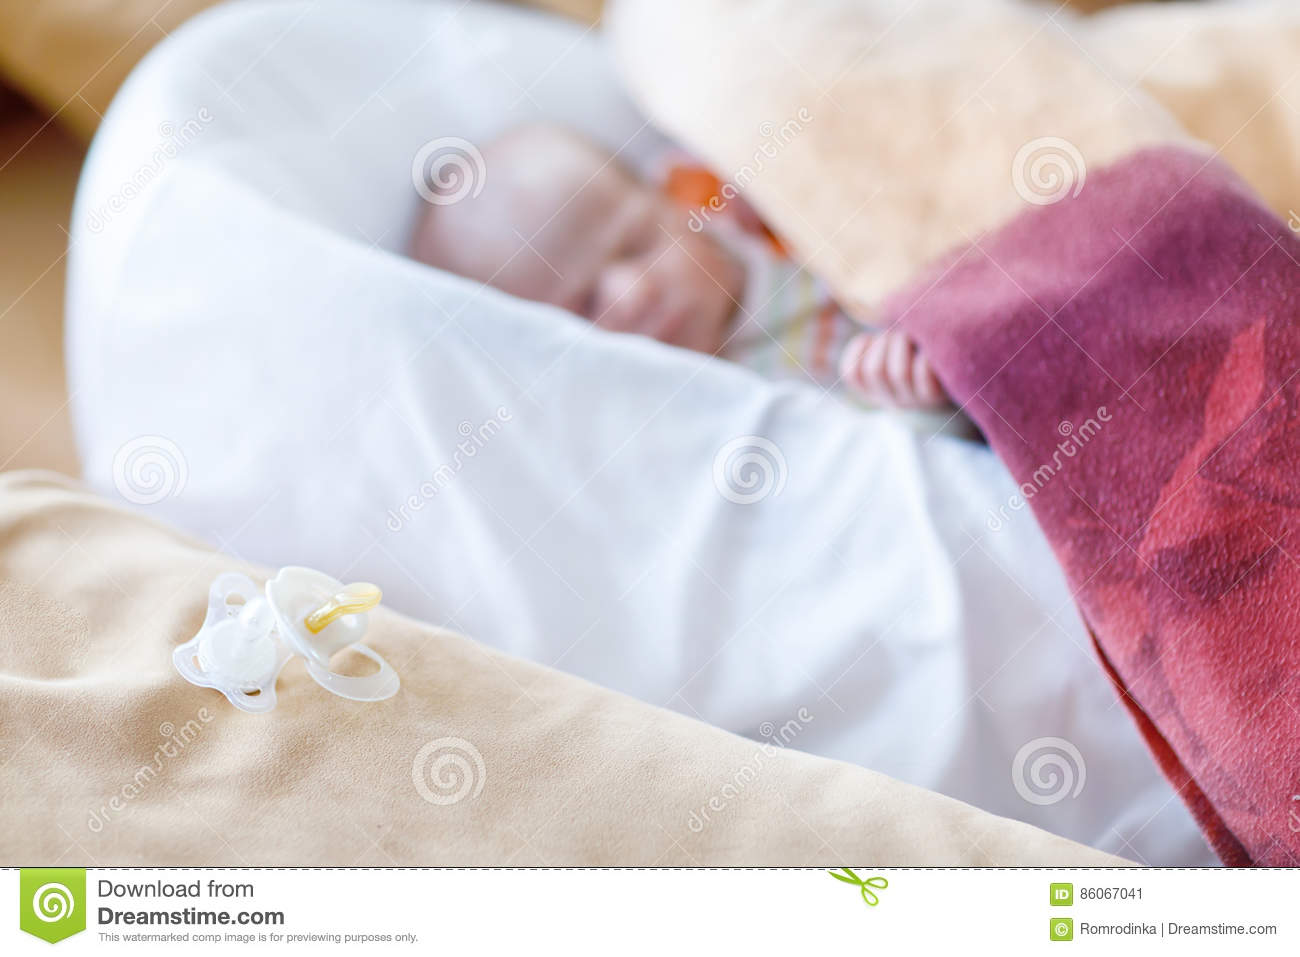 fa0945d4a Cute adorable newborn baby sleeping peaceful in bed. Focus on calm pacifier  or dummy. New born child, little girl laying in bed. Family, new life,  childhood ...